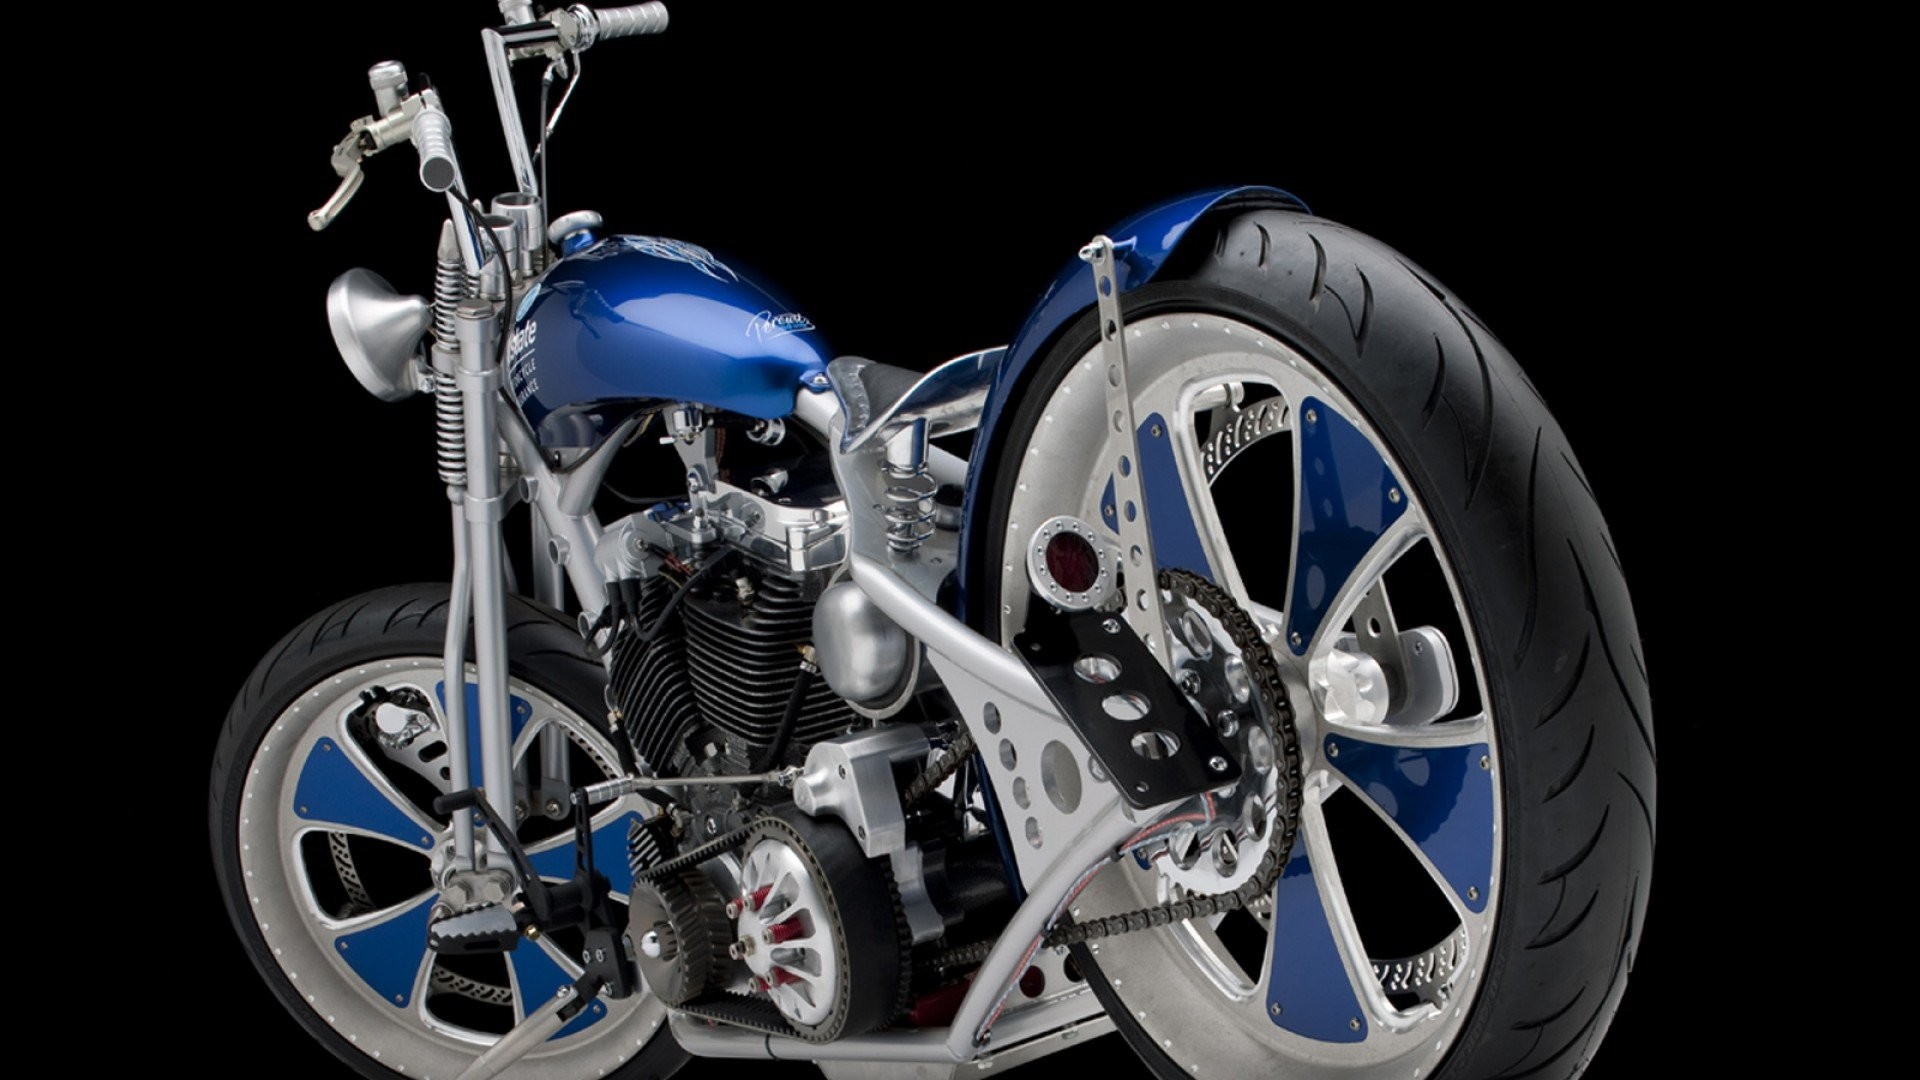 1920x1080 Bobber Motorcycle